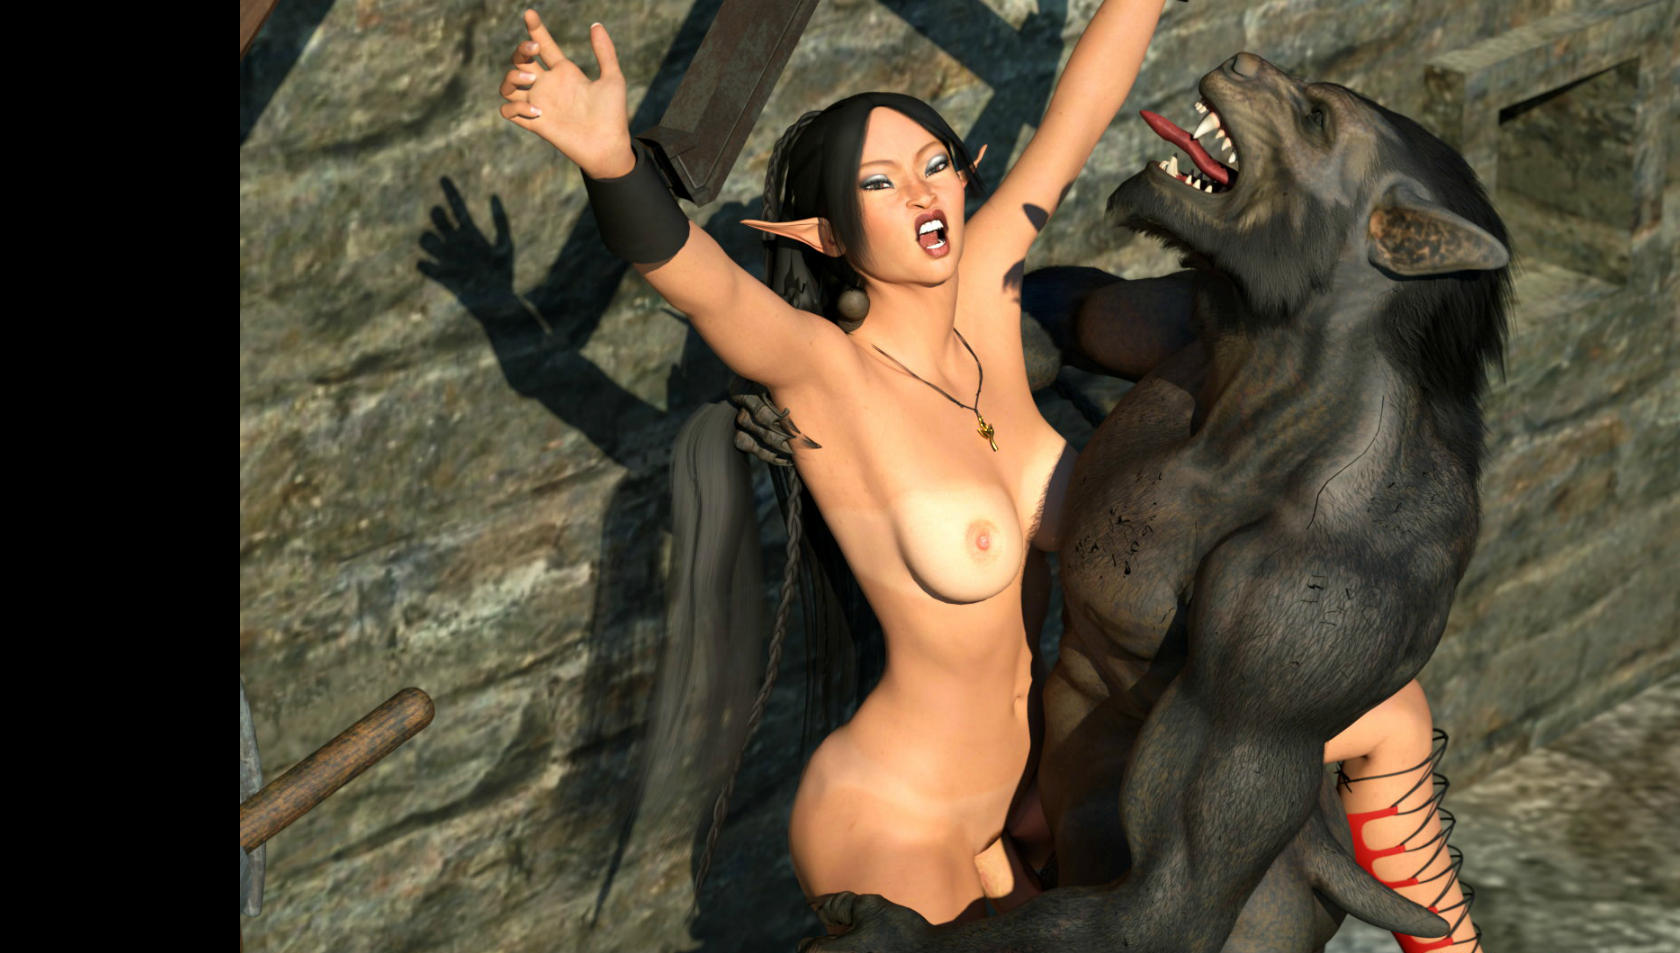 Cartoon porn werwolf naked scene